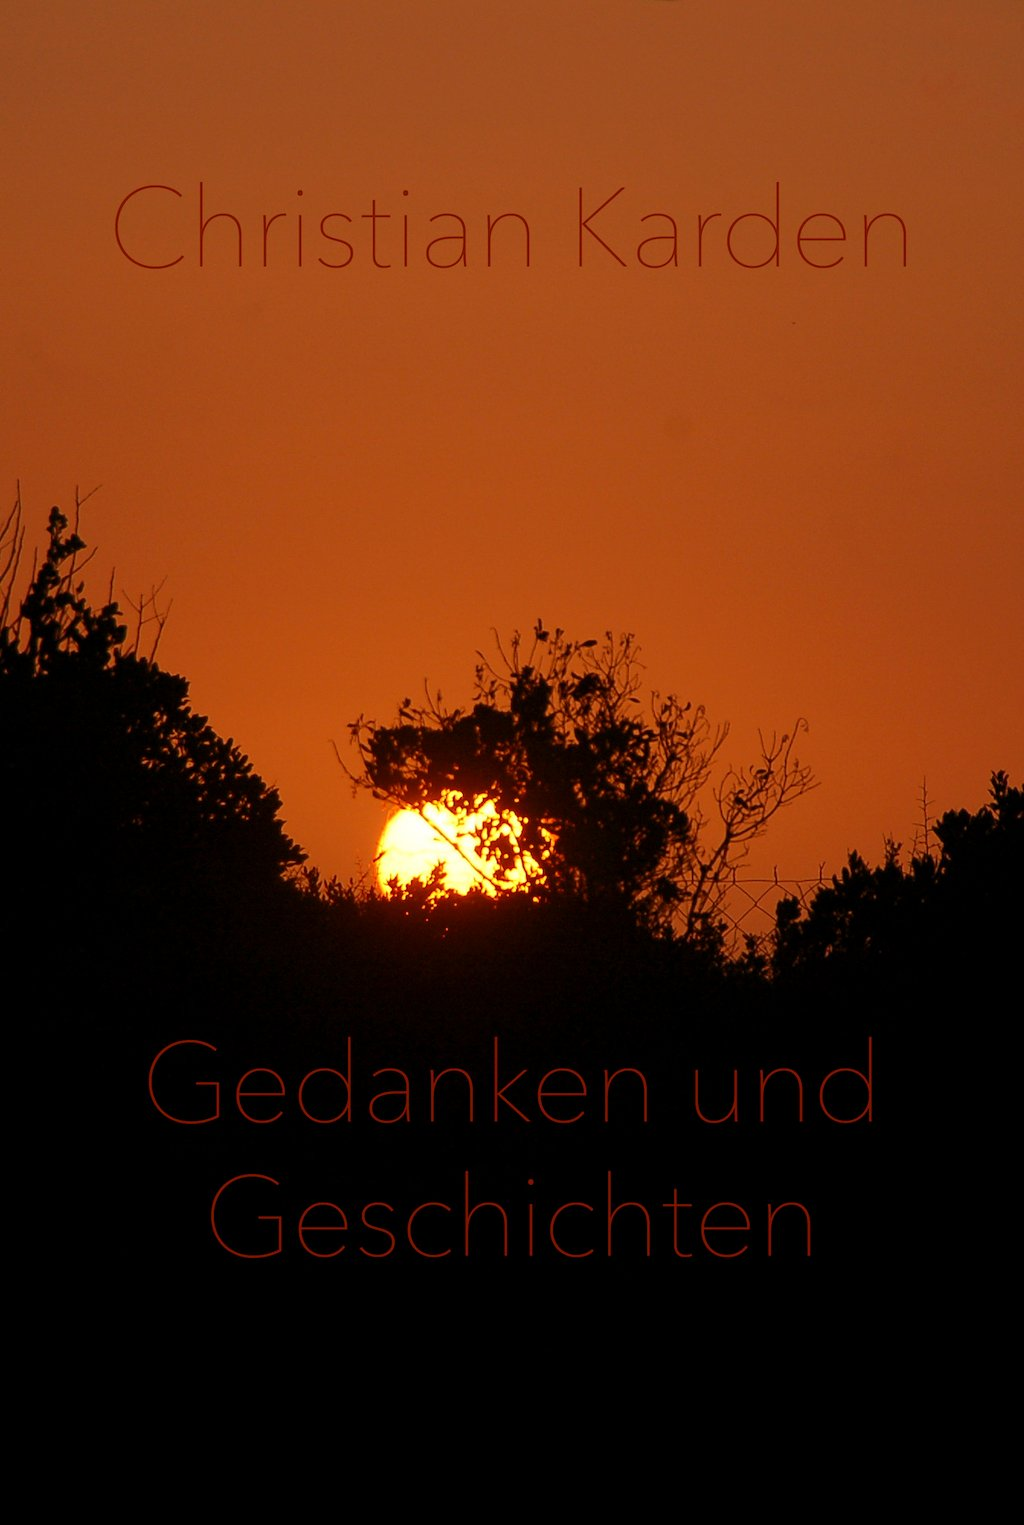 picture seen at: http://www.christiankarden.de